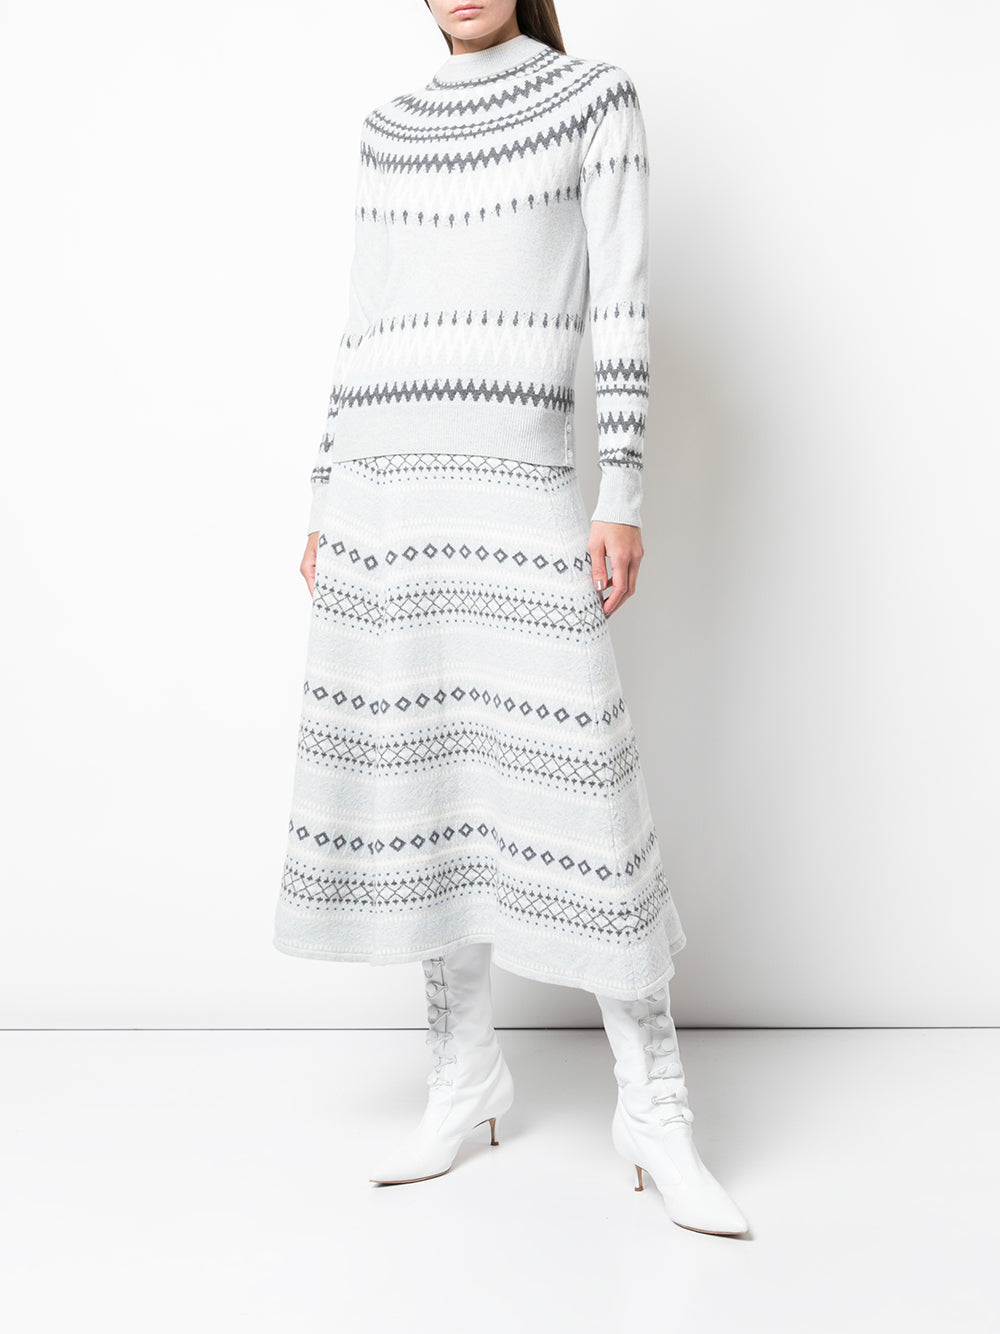 FAIRISLE KNIT MIDI SKIRT IN WOOL CASHMERE